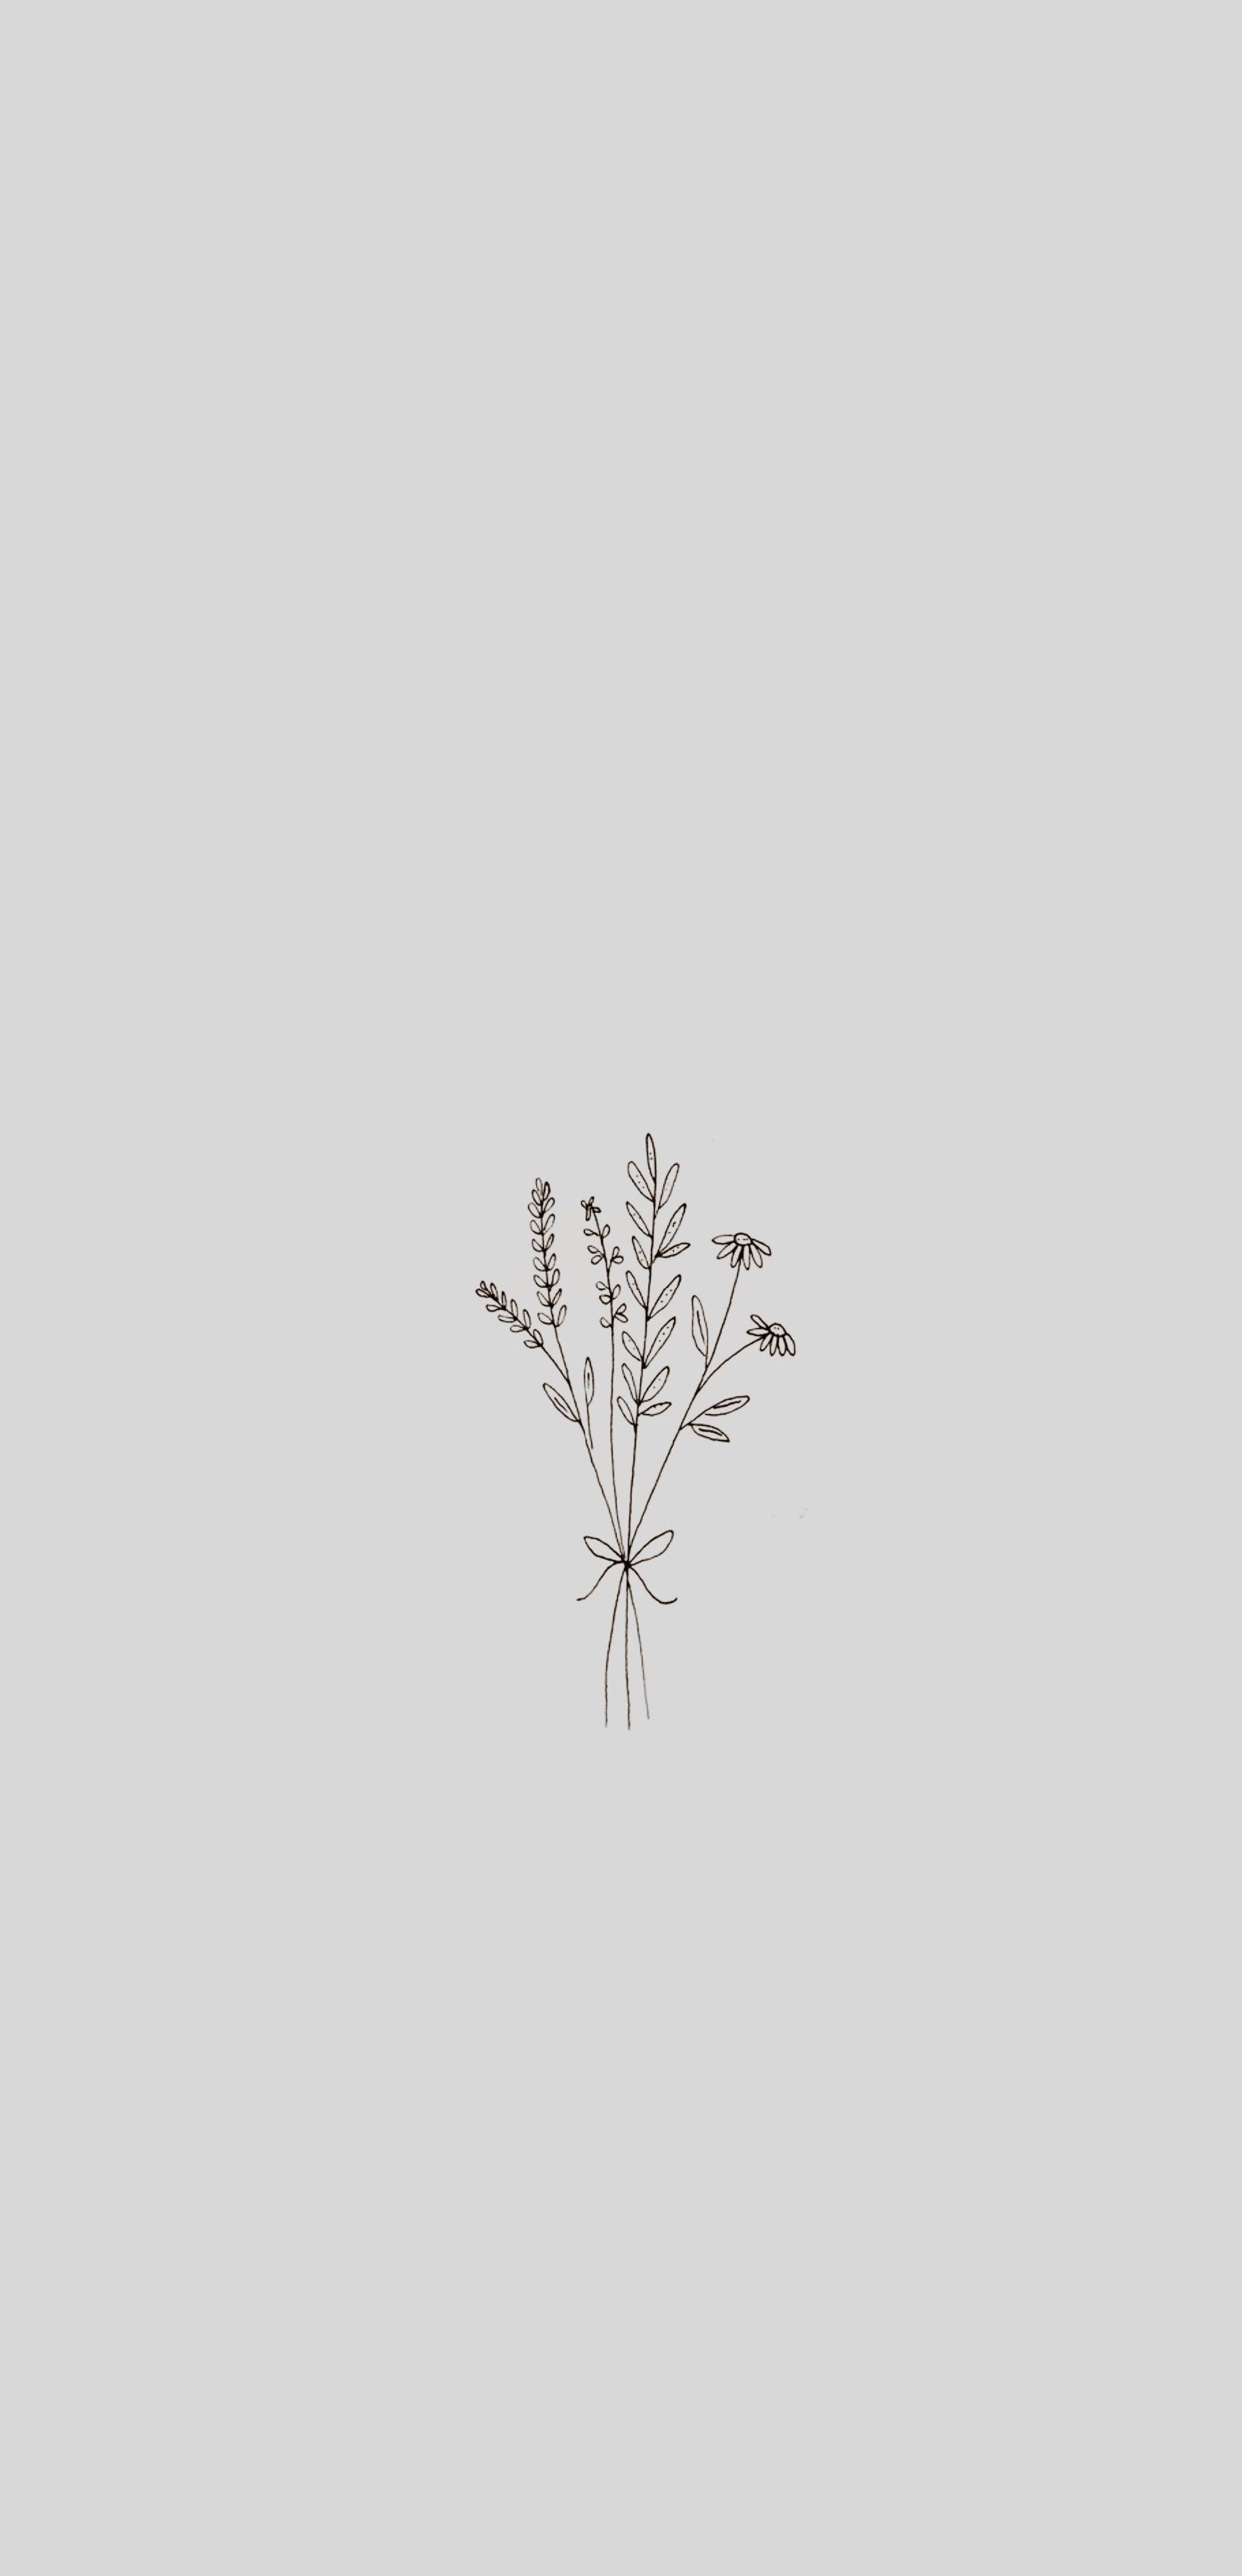 Minimalist Wallpaper Minimalist Wallpaper Minimalist Flowers Plant Background